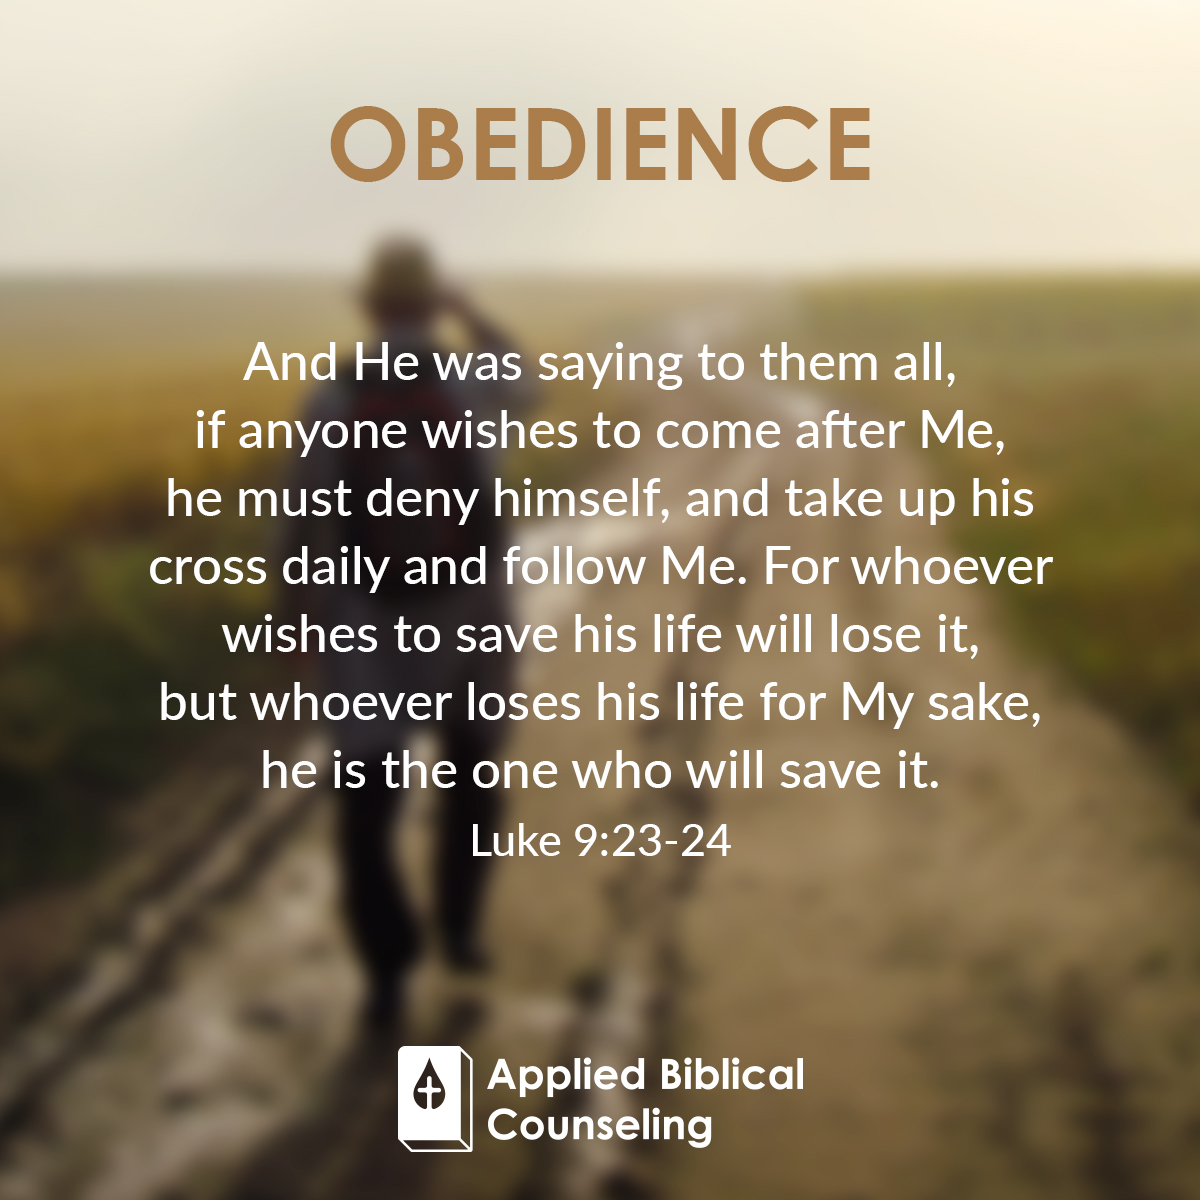 Applied Biblical Counseling Facebook w23 Obedience 2